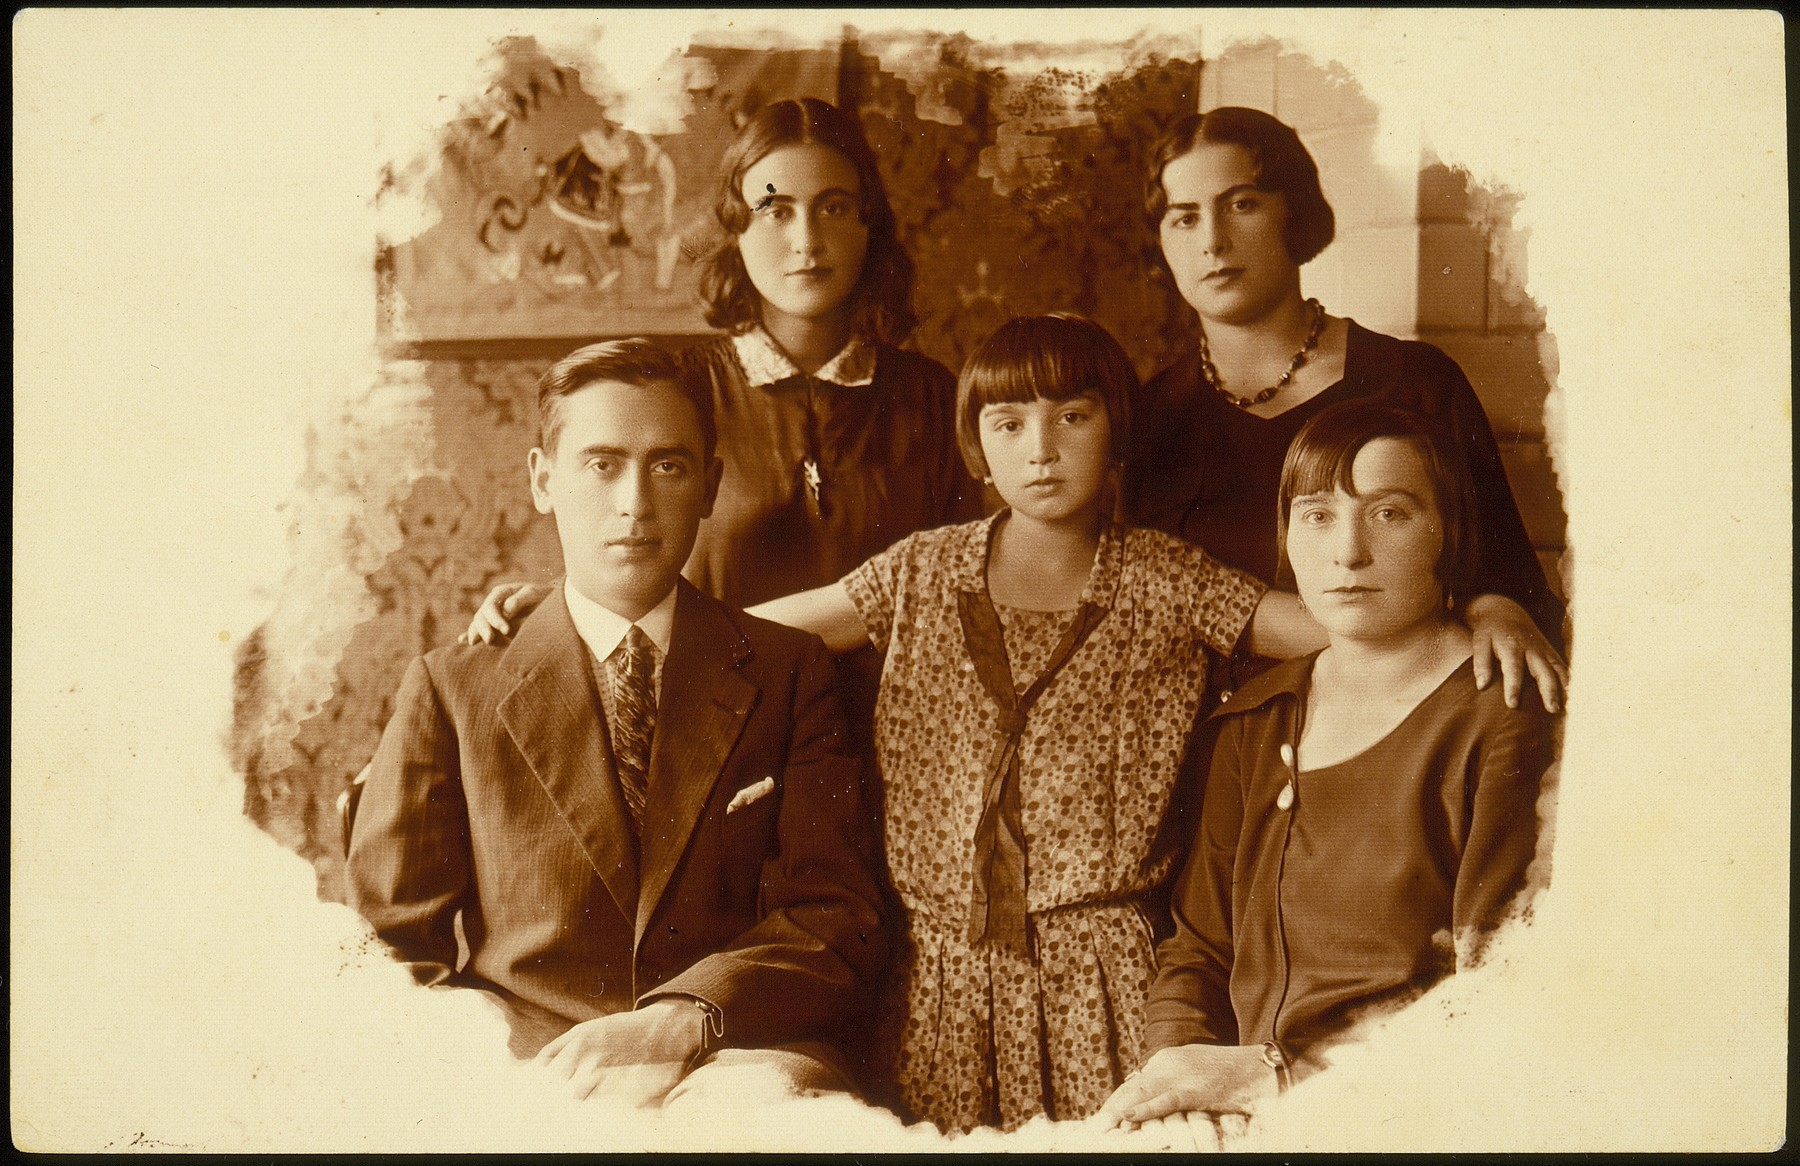 Portrait of members of the Kudlanski and Dubrowicz families in Eisiskes.  Pictured in the front row from right to left is: Hanneh-Beile (Moszczenik) Kudlanski, her daughter Atare Kudlanski  and her cousin Shaul Hayyim Dubrowicz.  Standing behind from right to left are Shaul's sisters,  Leah and Chava Dubrowicz. This photo was mailed by Hanneh-Beile to her two sisters, Sarah Moszczenik and Fradl (Moszczenik) Yrukanski.  Hanneh-Beile and her daughter Atara immigrated to the United States before the war.  The Dubrowicz siblings and their families perished during the Holocaust.